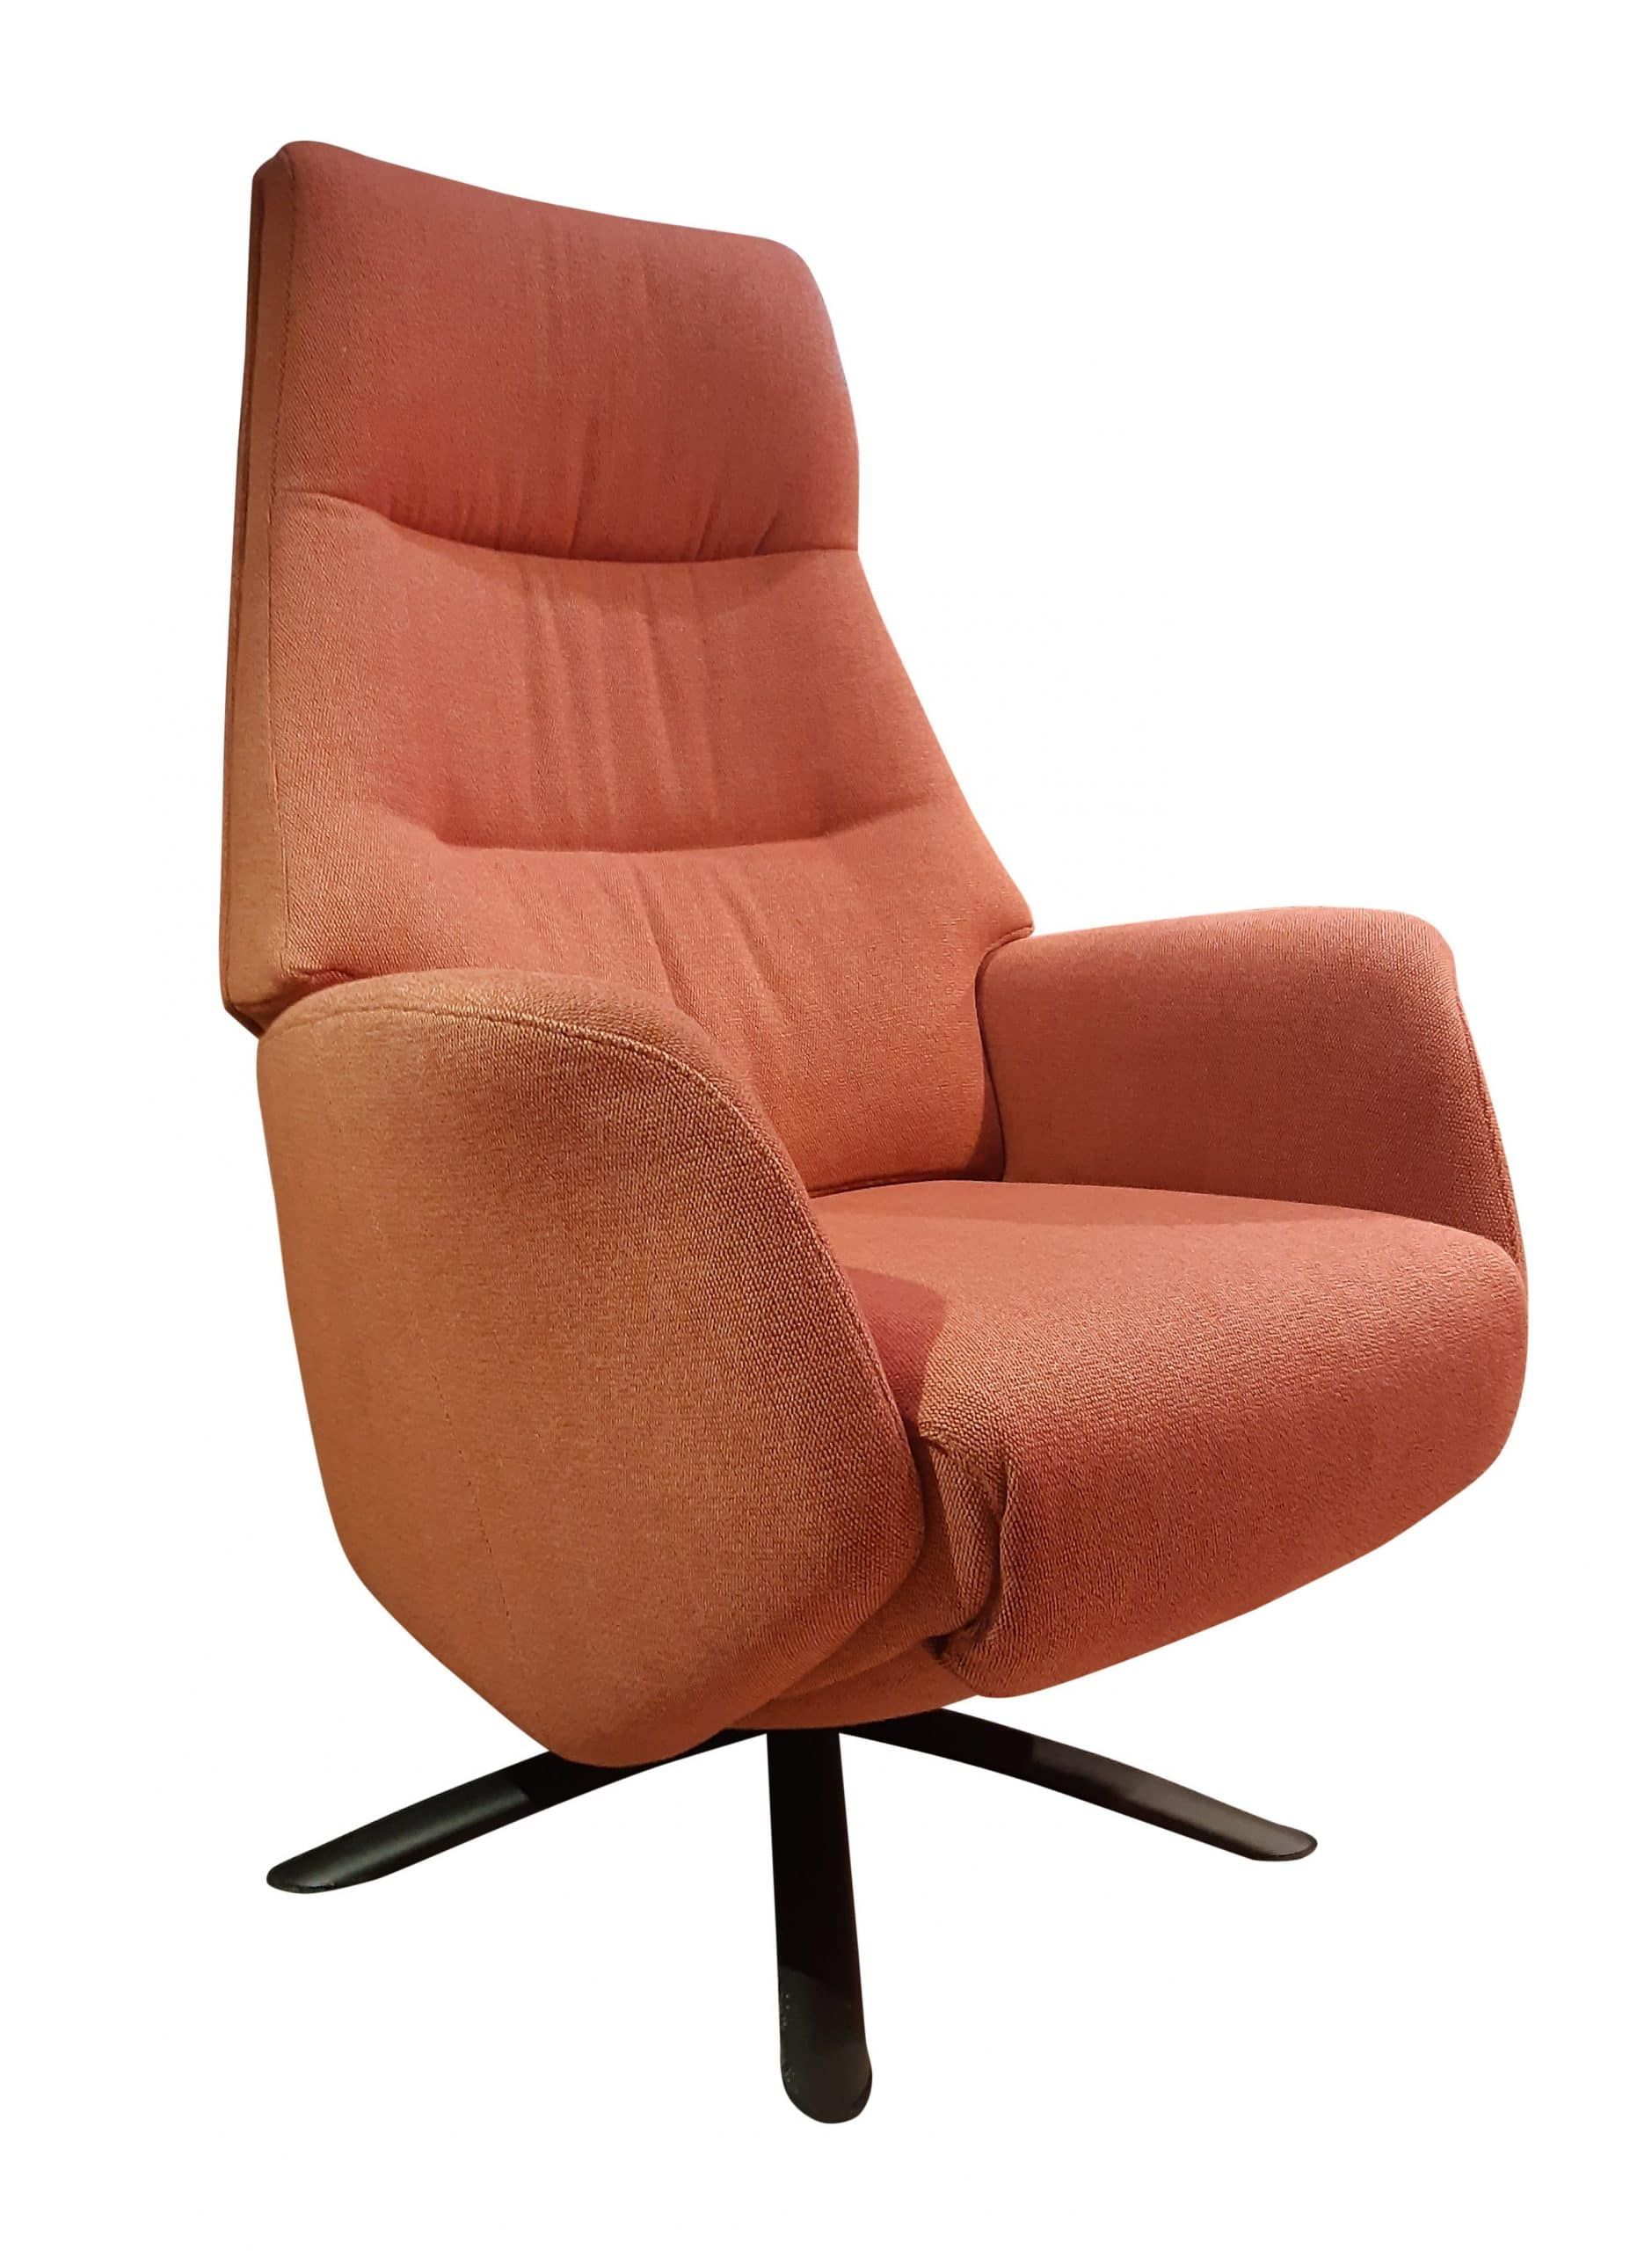 Relaxfauteuil Zw26 Scaled